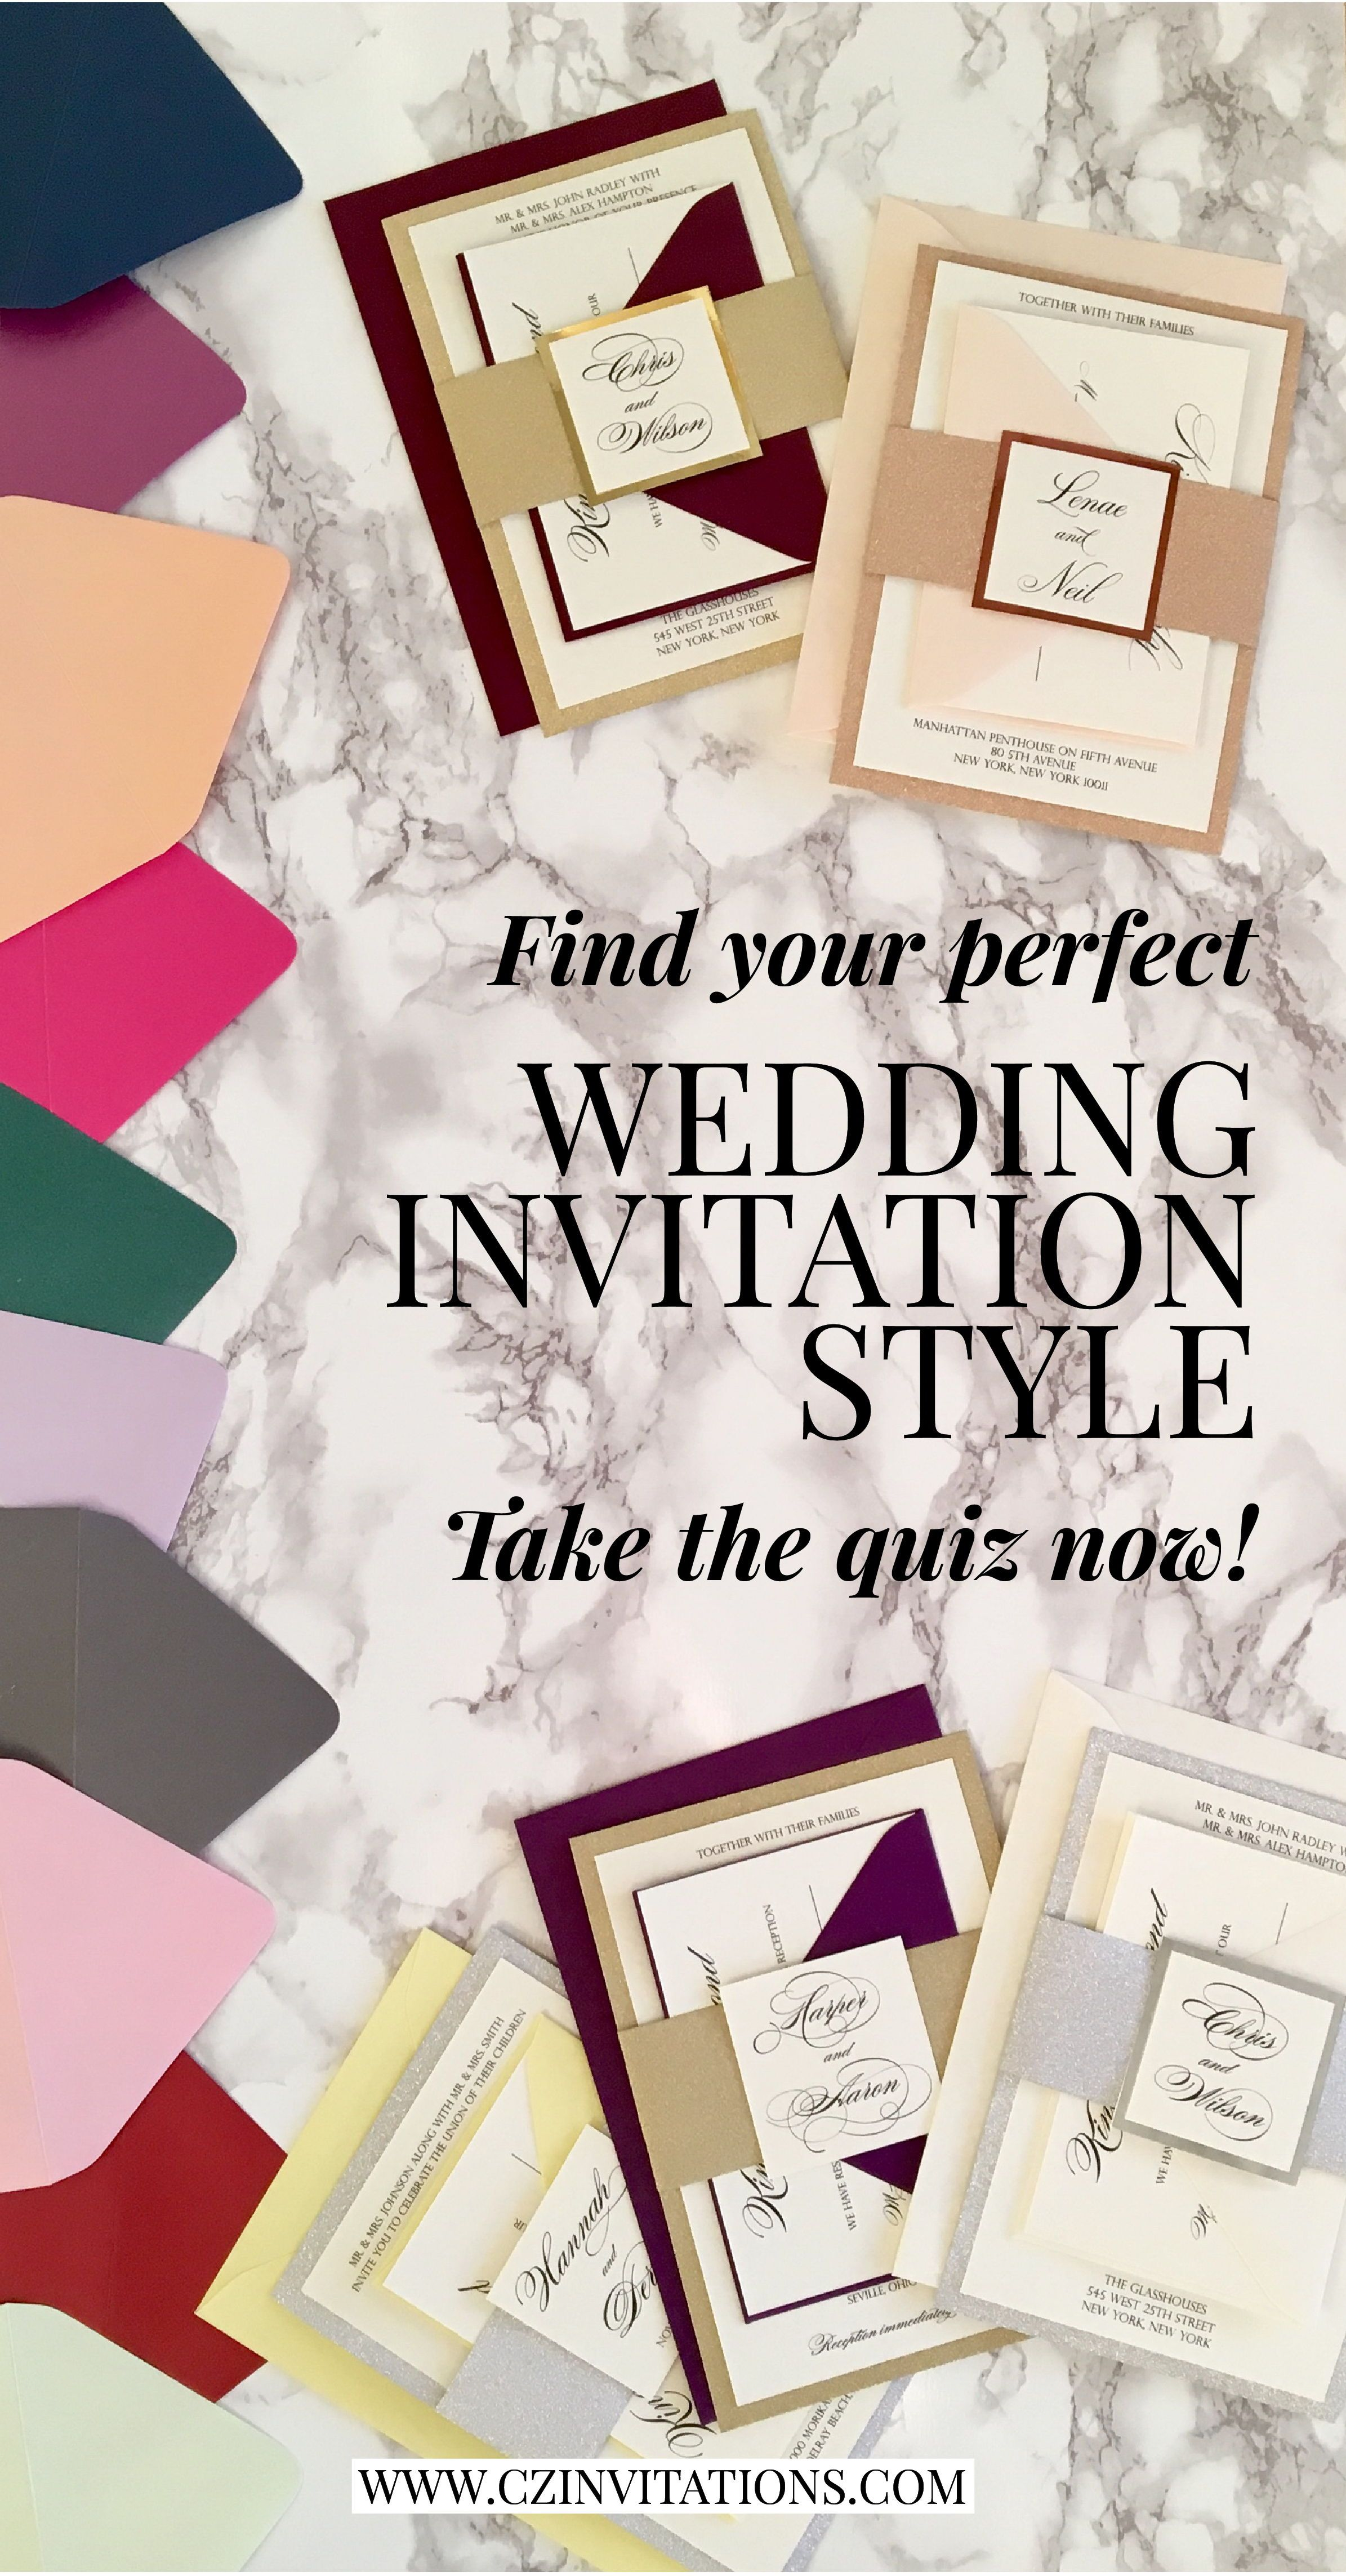 struggling to figure out a wedding theme? take this quiz to